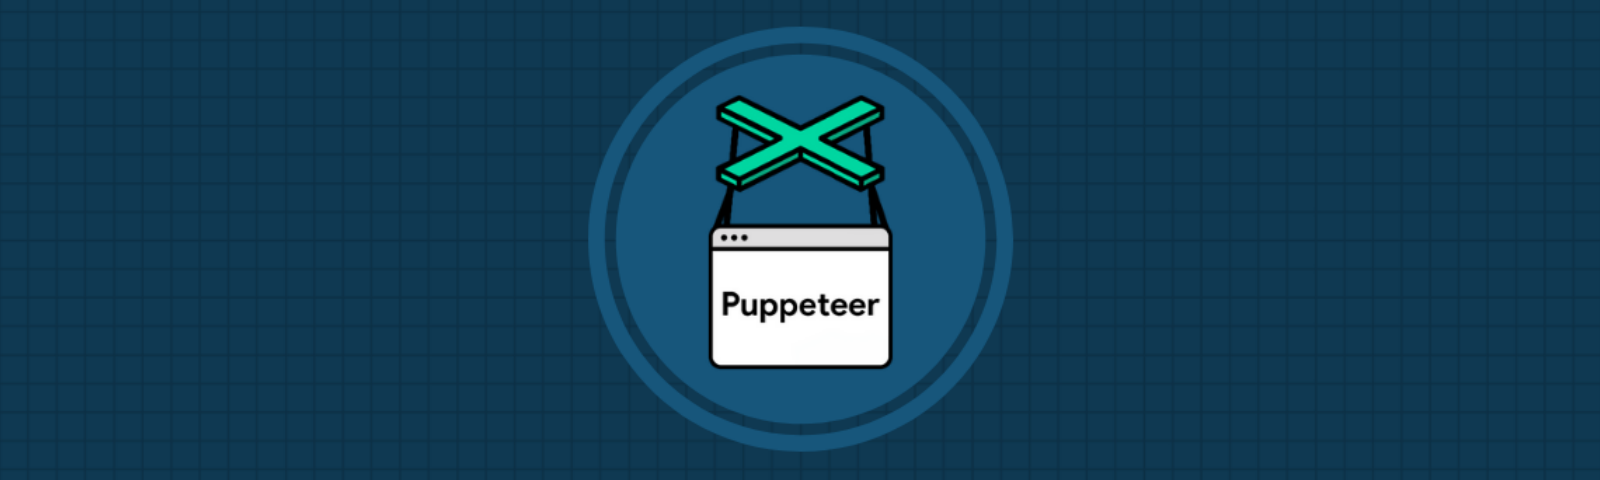 How to disable images and CSS in Puppeteer to speed up web scraping